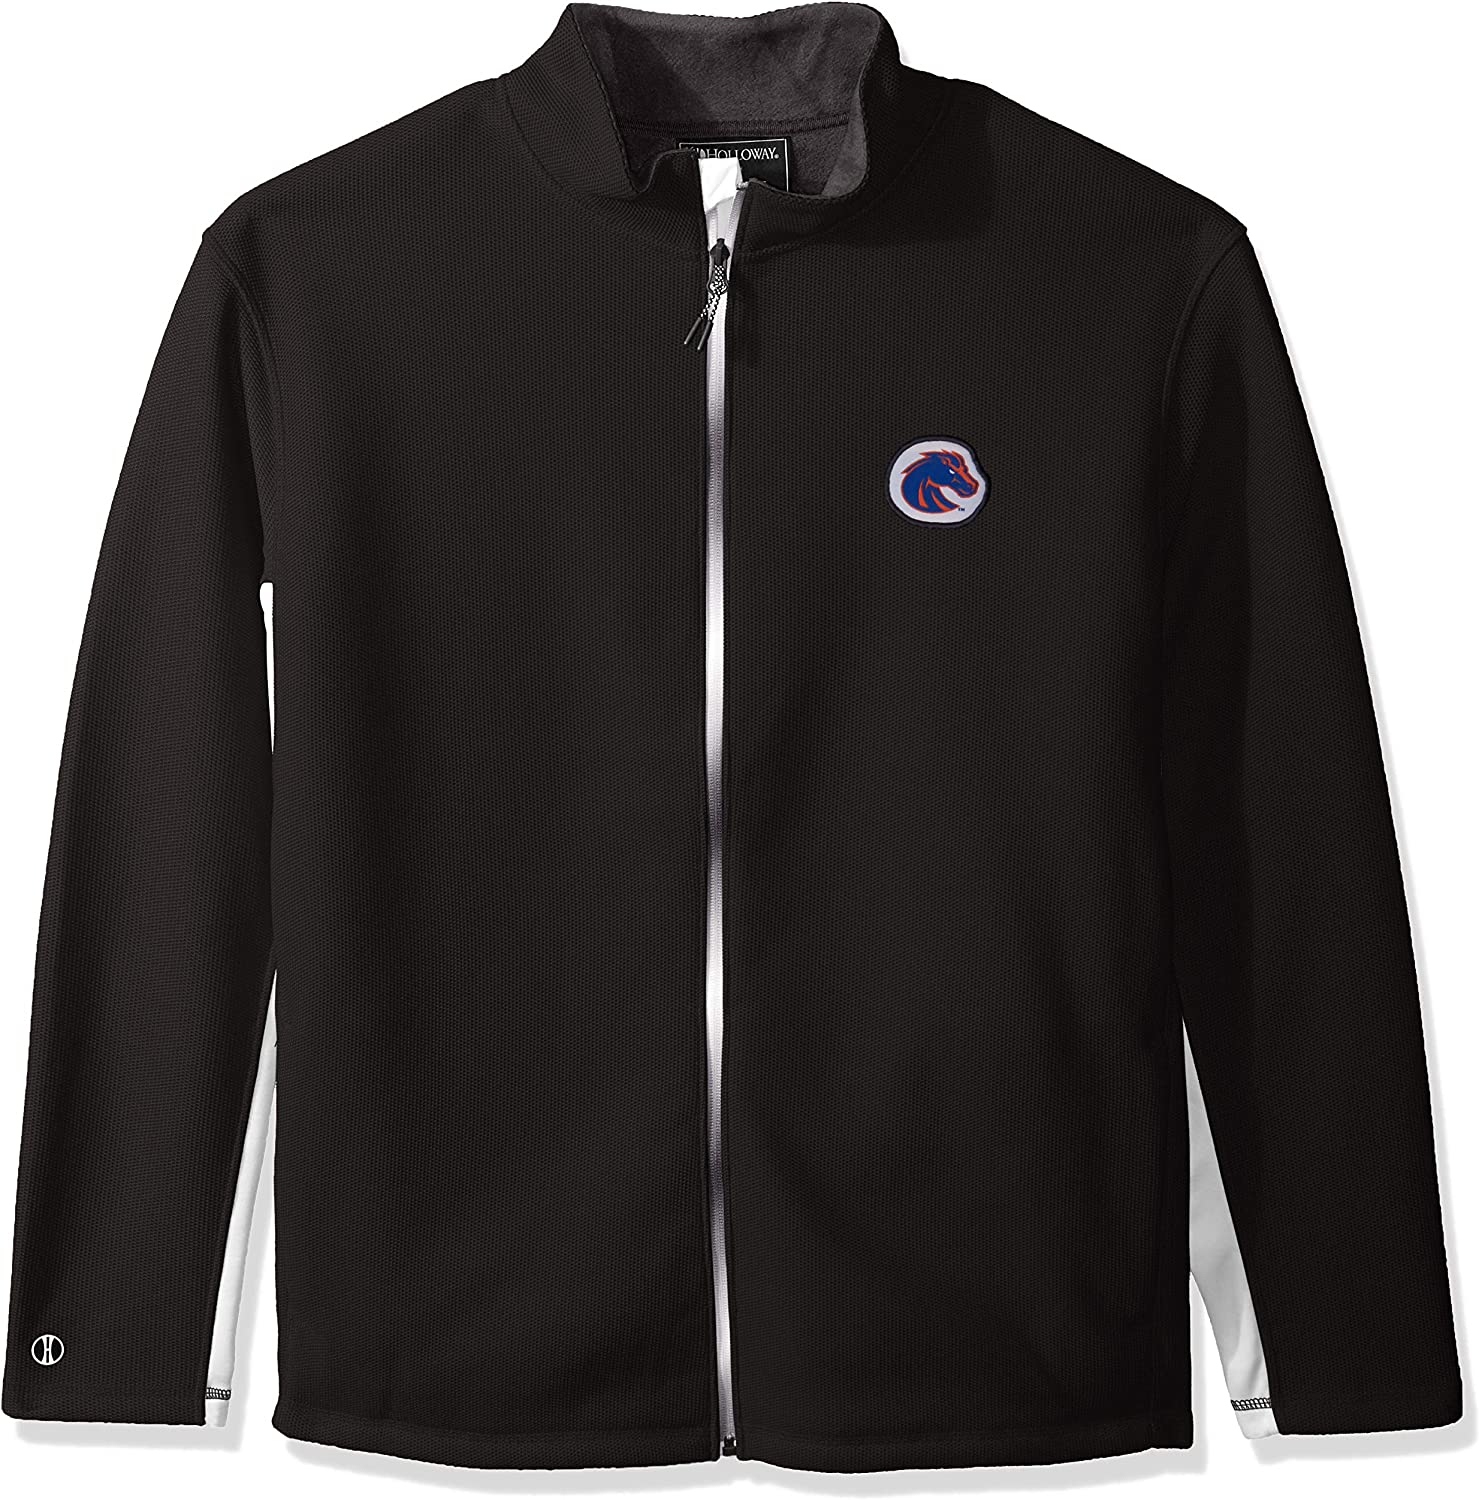 Ouray Sportswear NCAA mens Invert Jacket